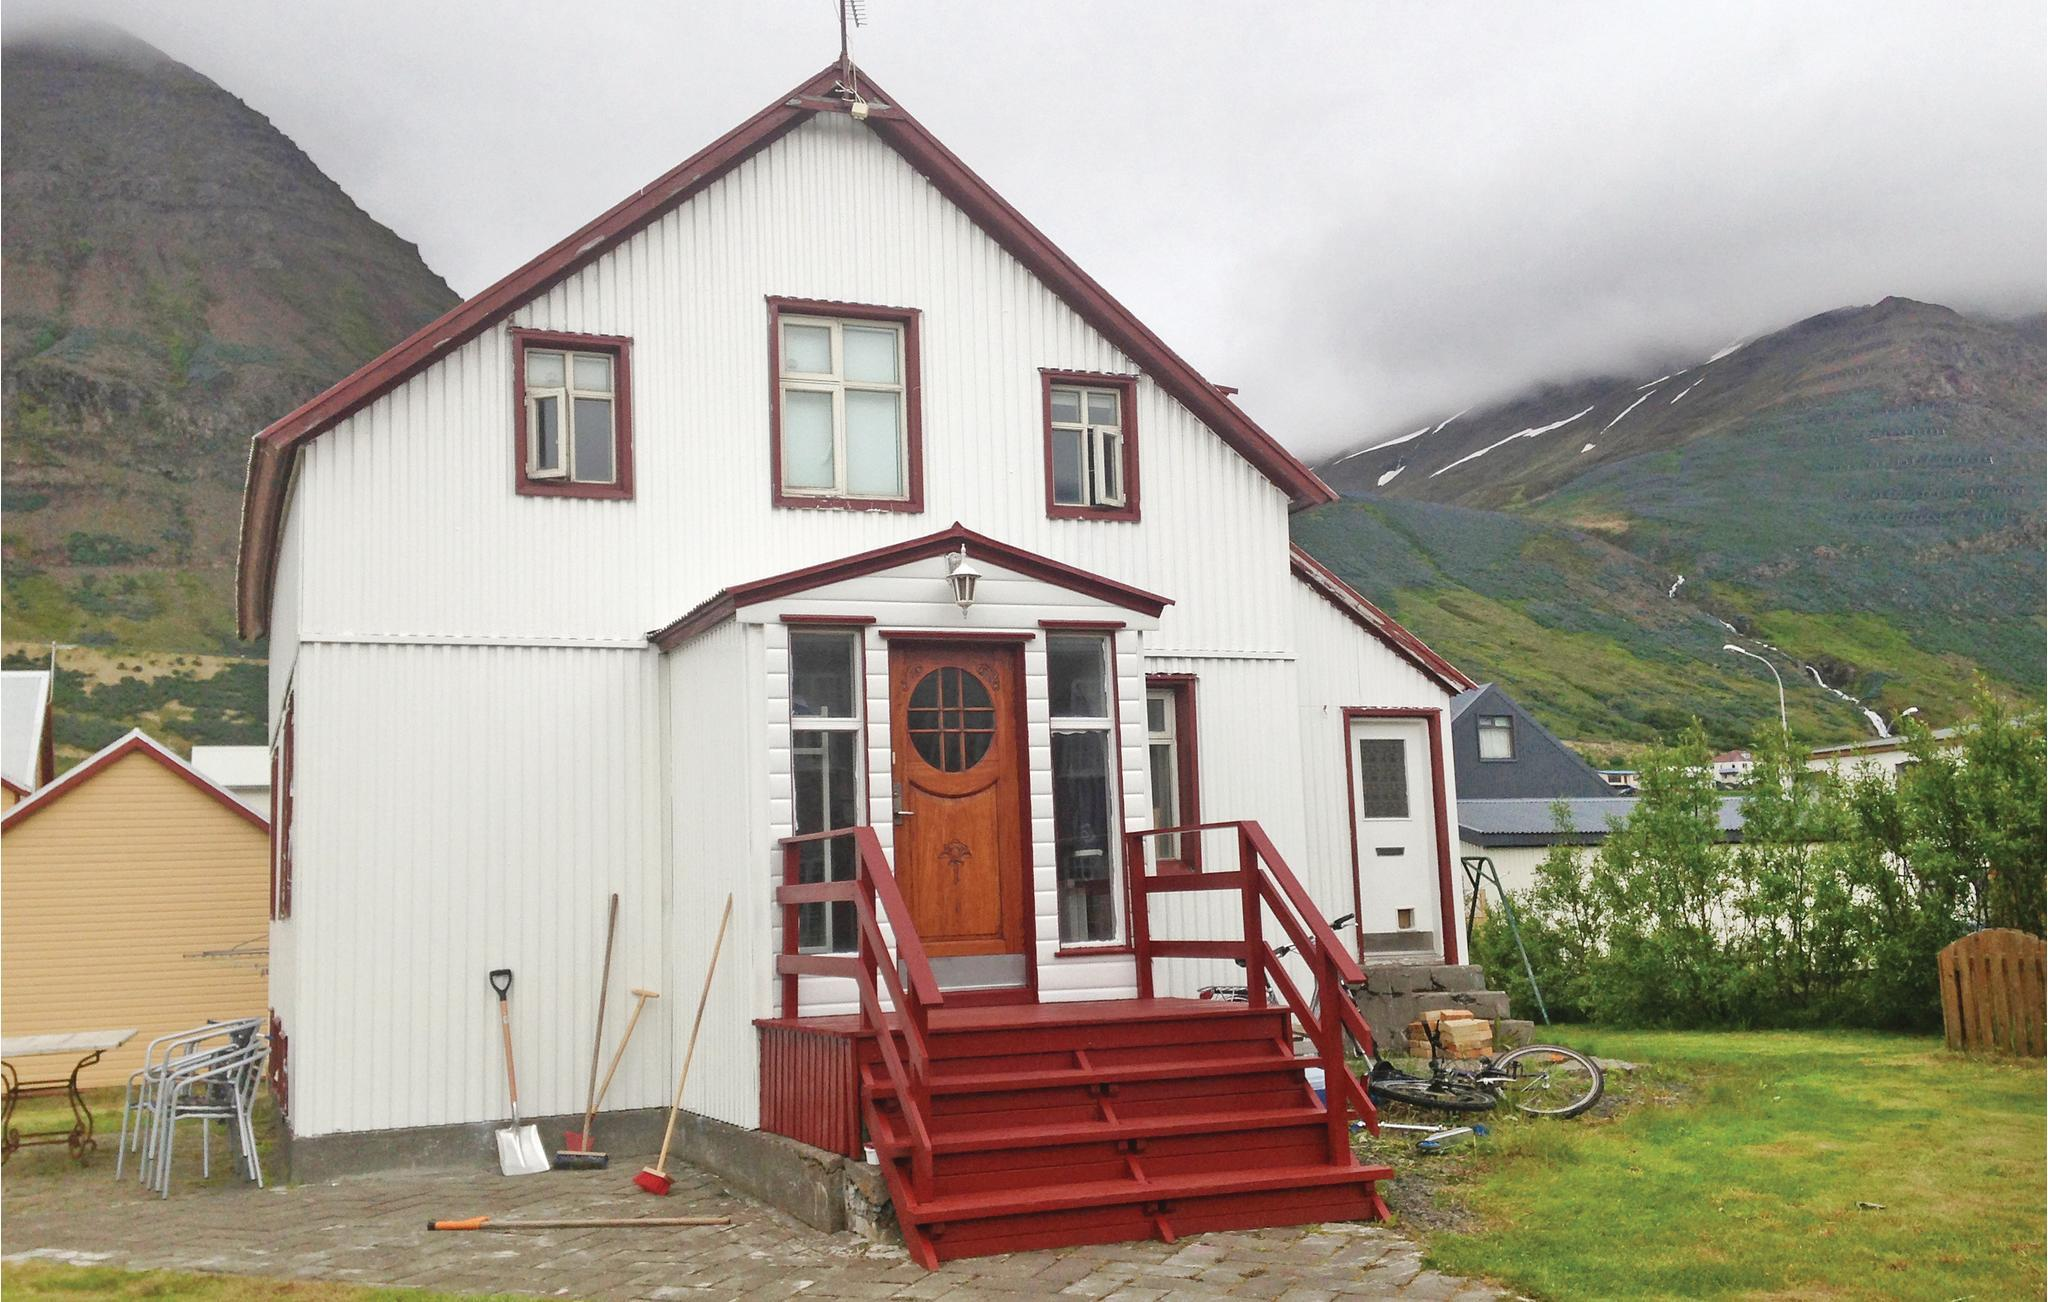 private holiday home Iceland_139-ICN314.jpg